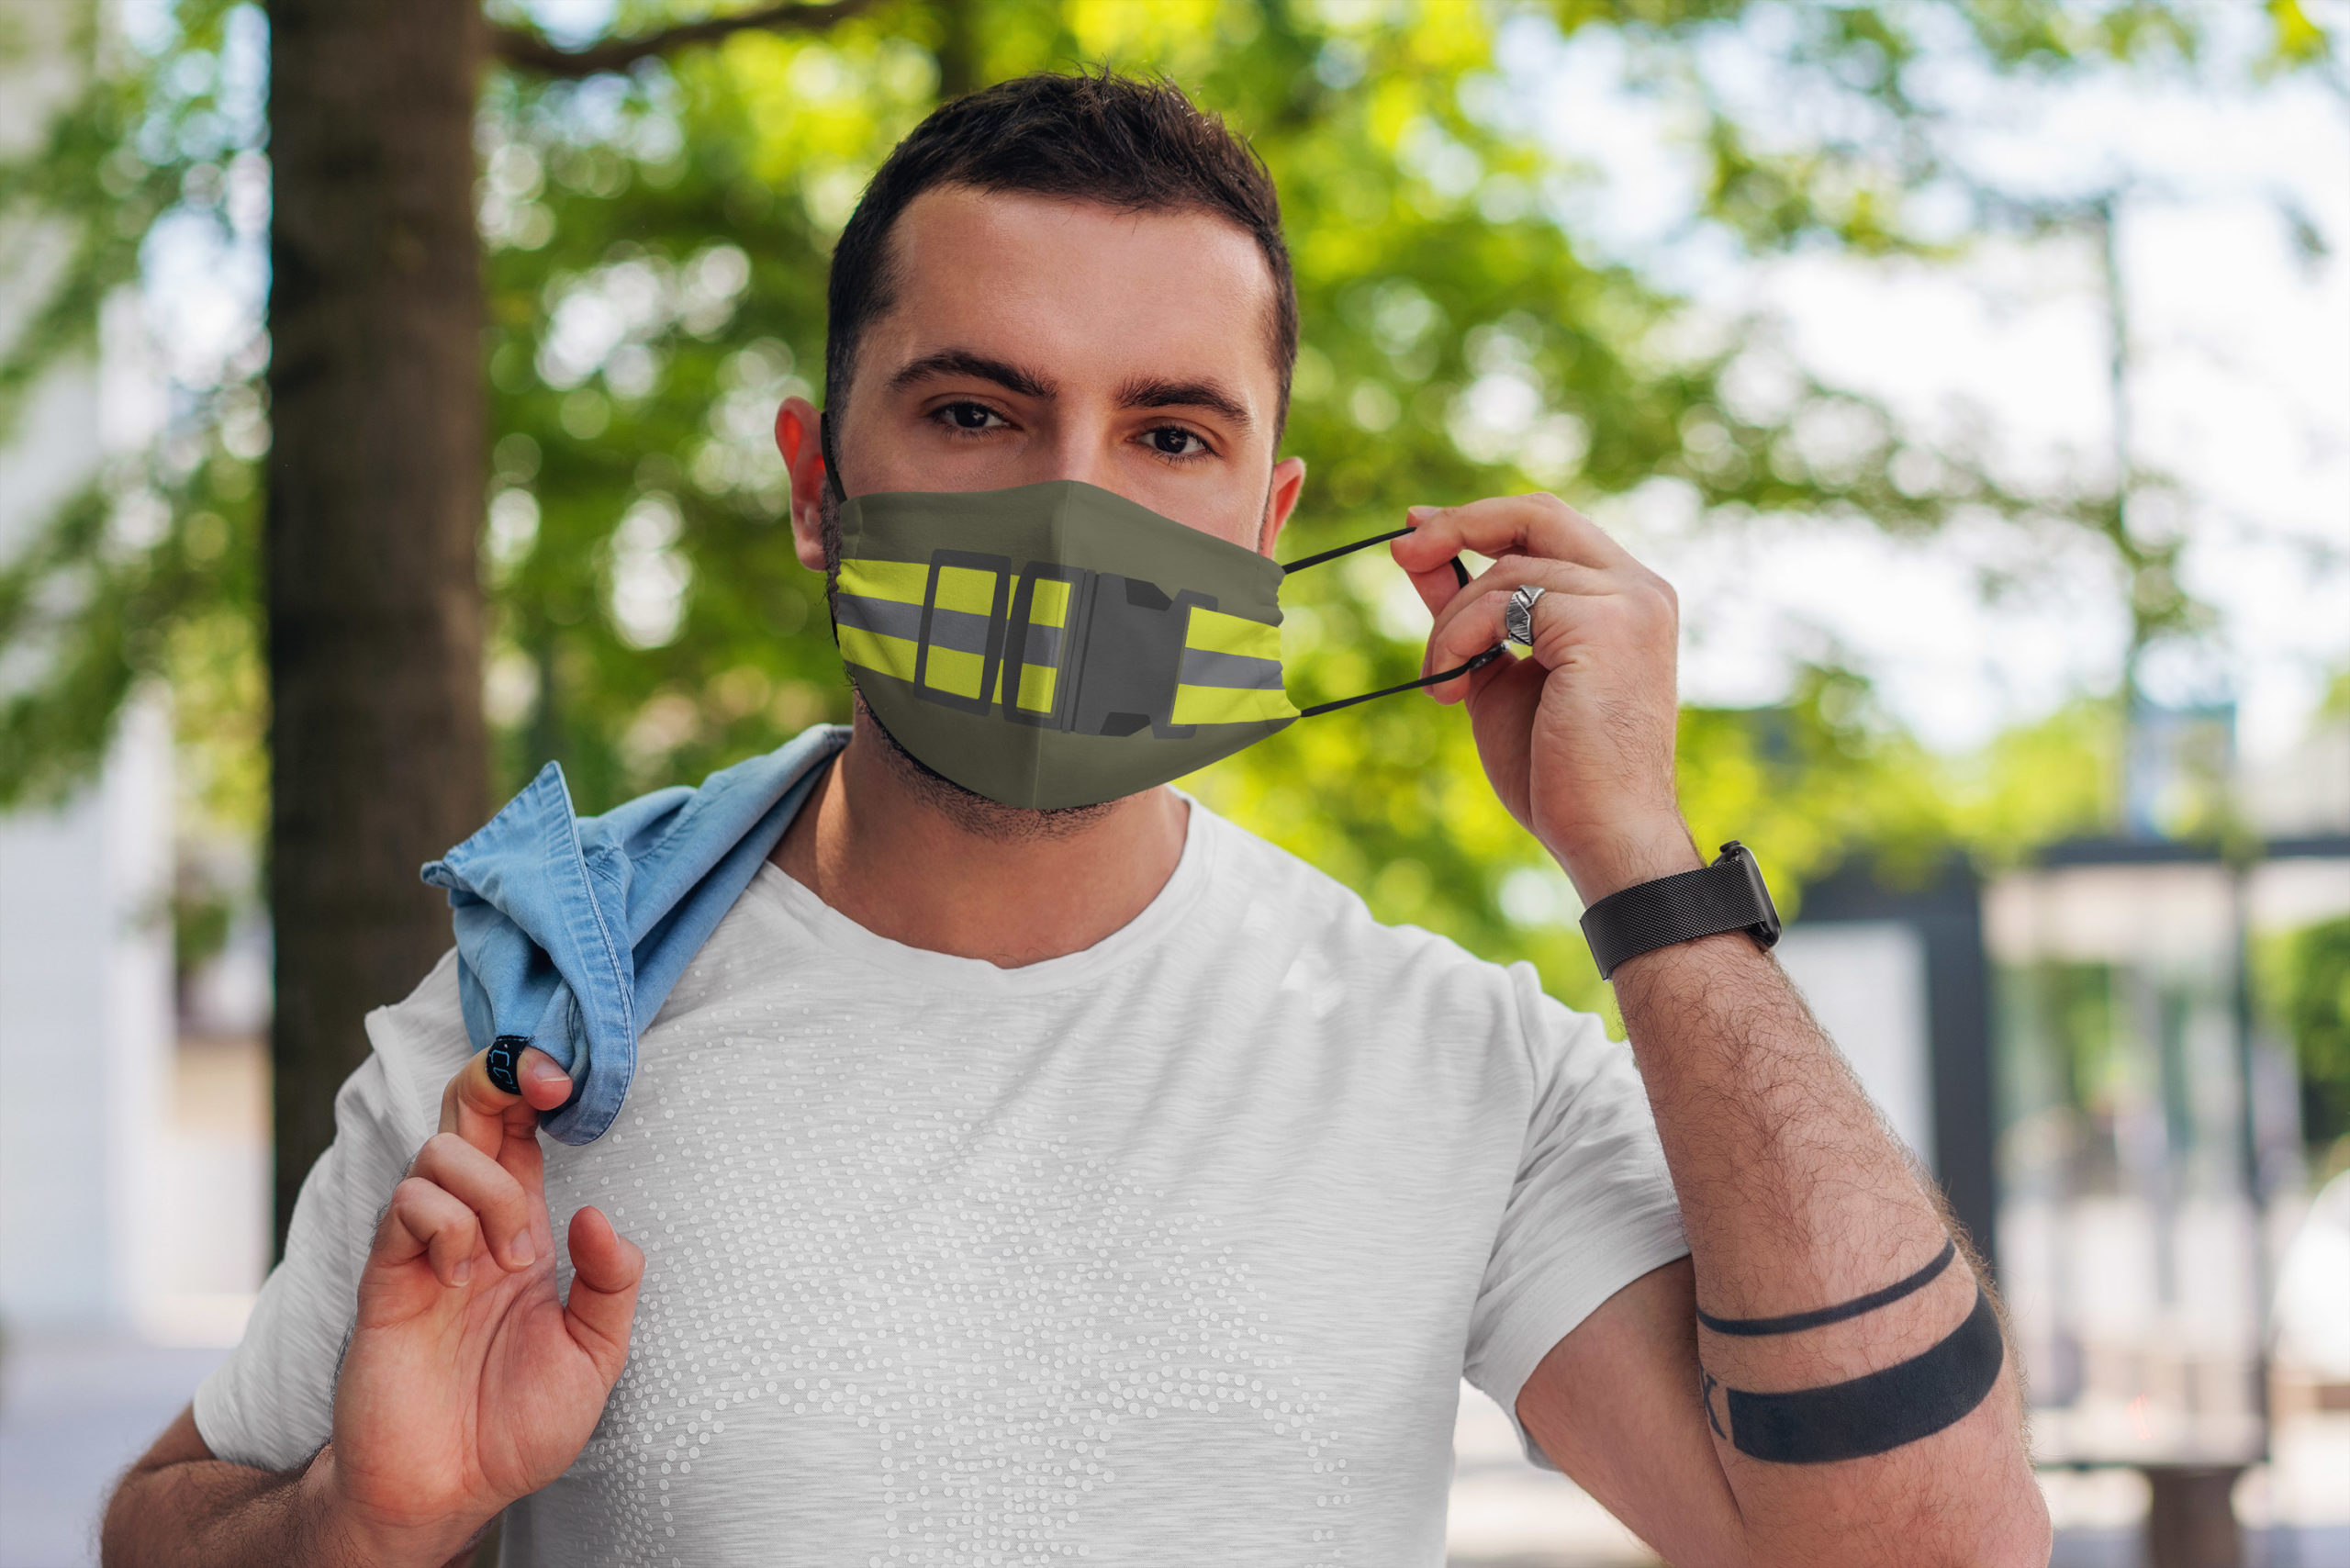 PT belt army anti pollution face mask - maria